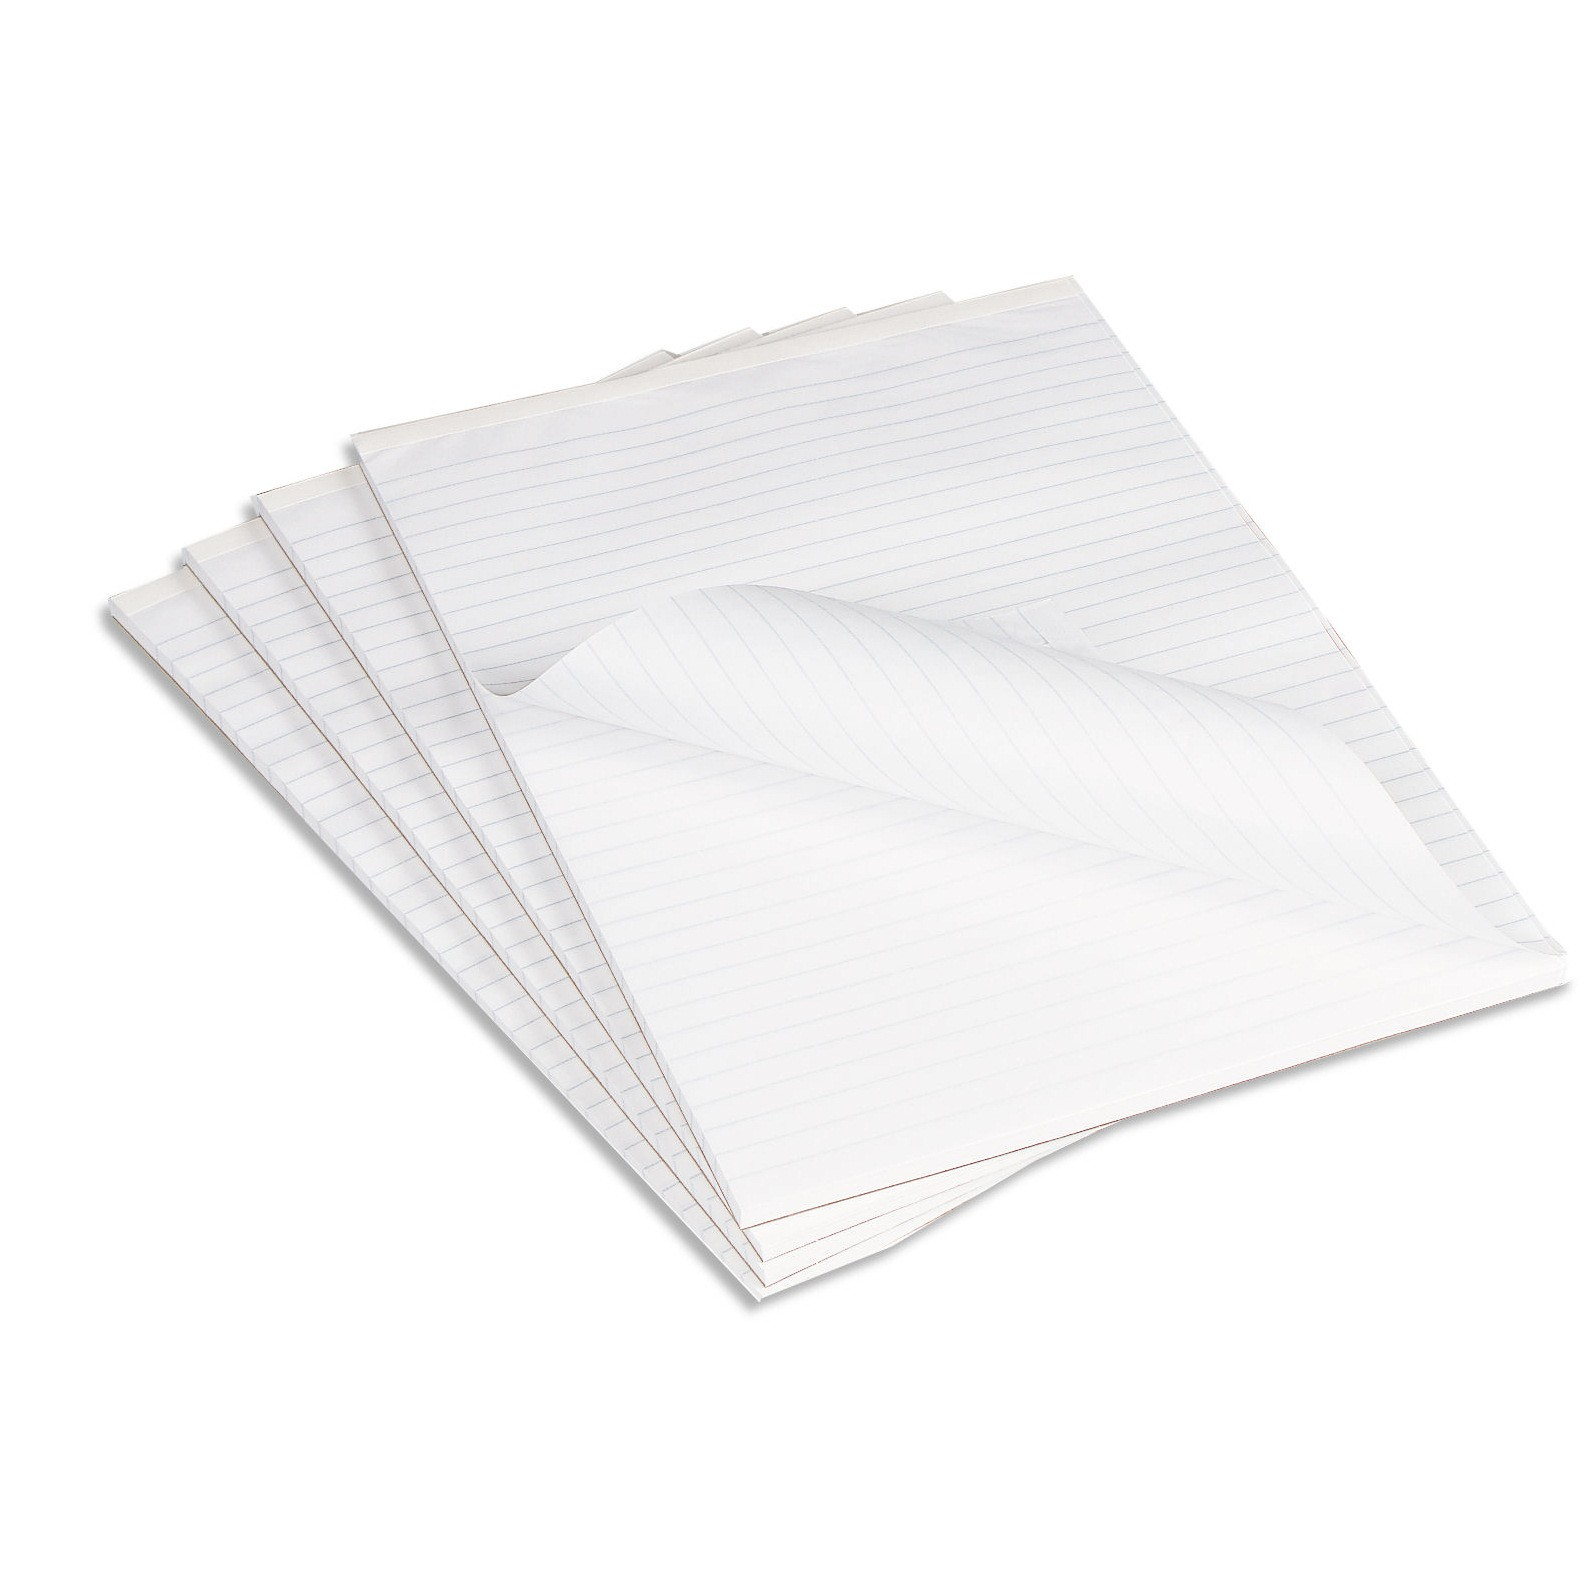 Memo Pads Sivine A4 Memo Pad 160 Pages PK10